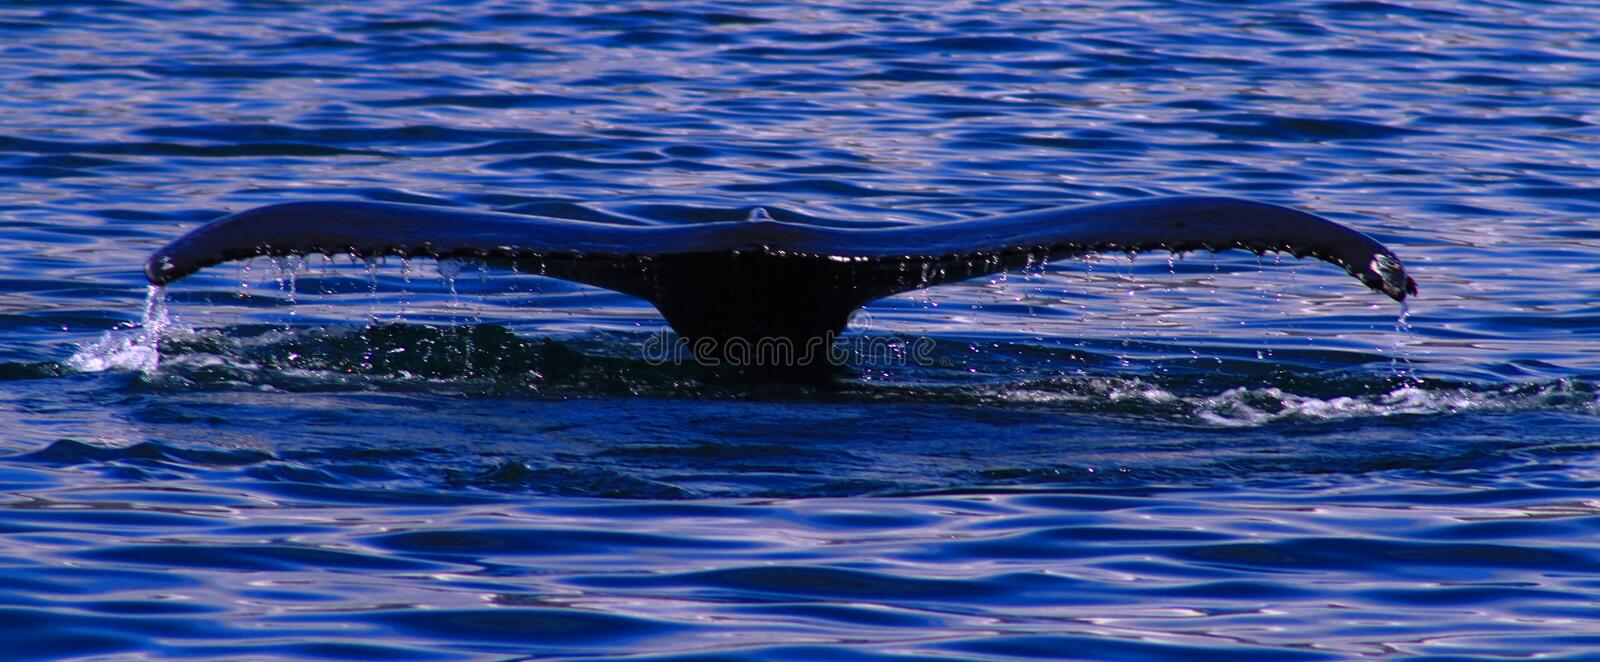 Humpback whale, Iceland royalty free stock photos